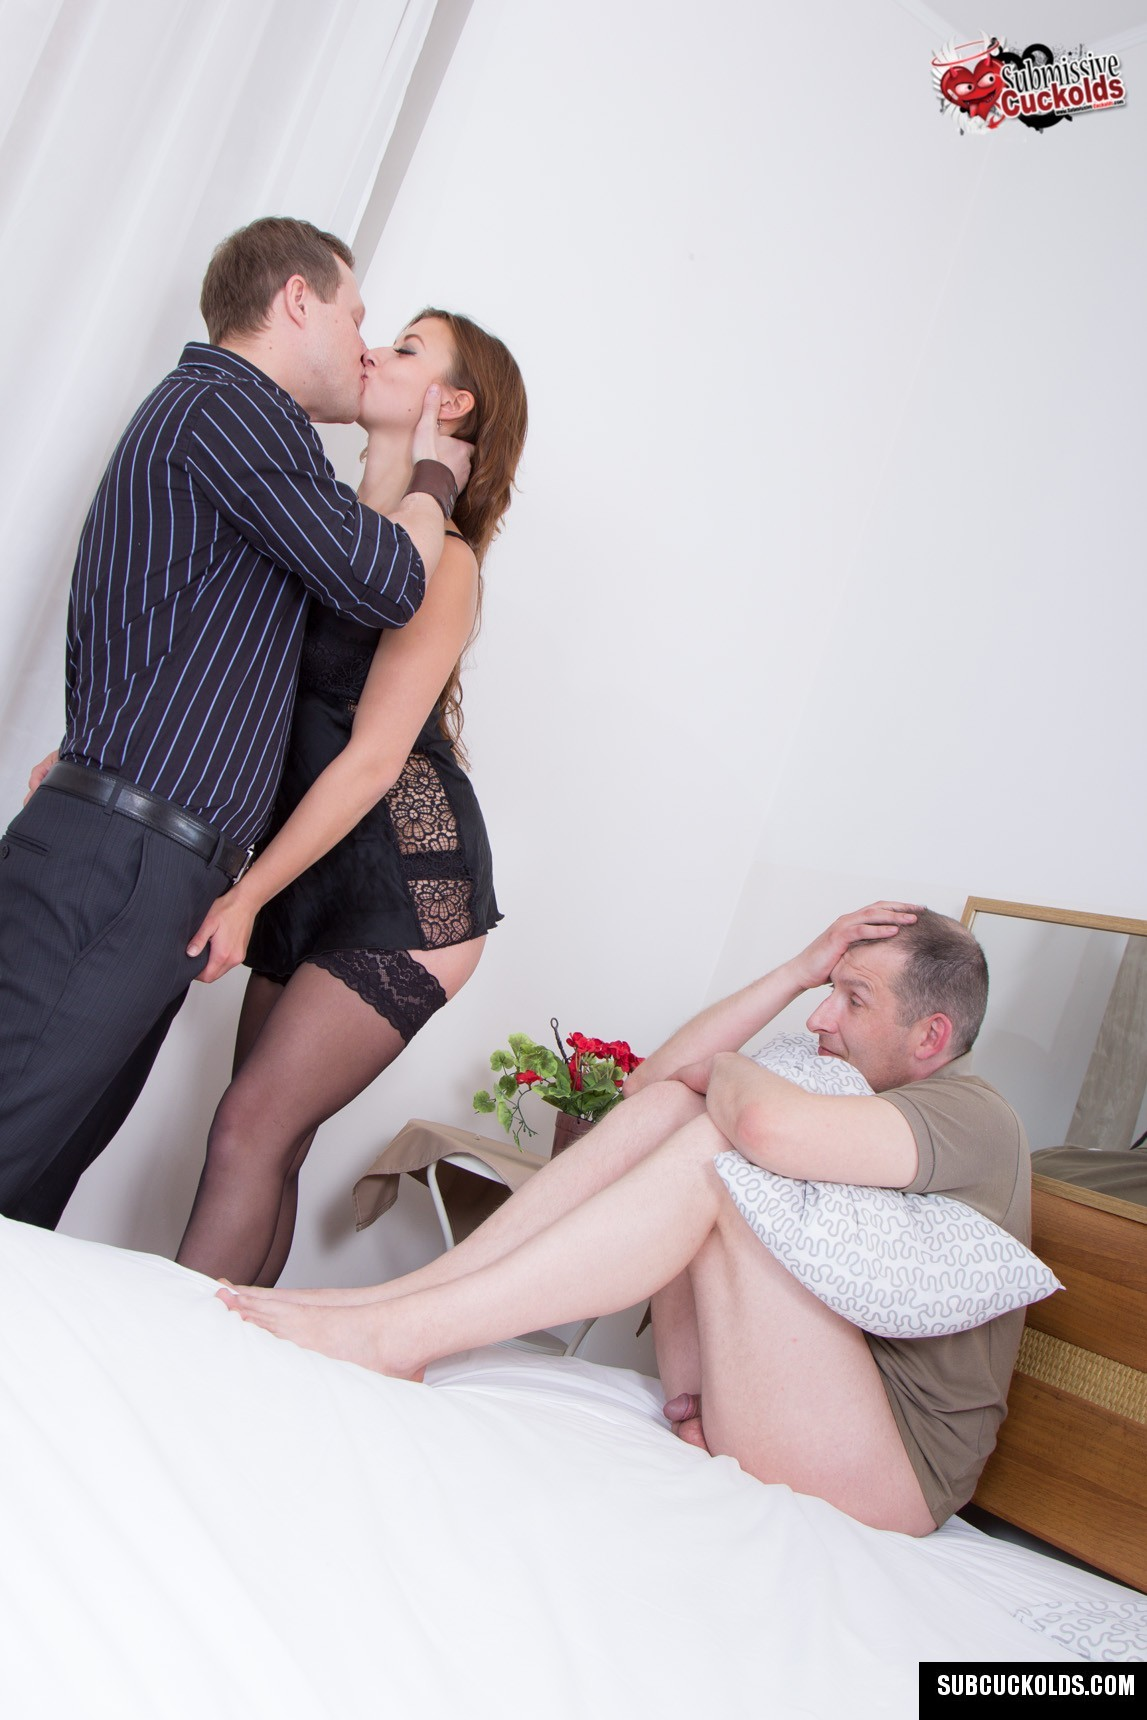 A young cuckold relationship part 1 - 2 part 10